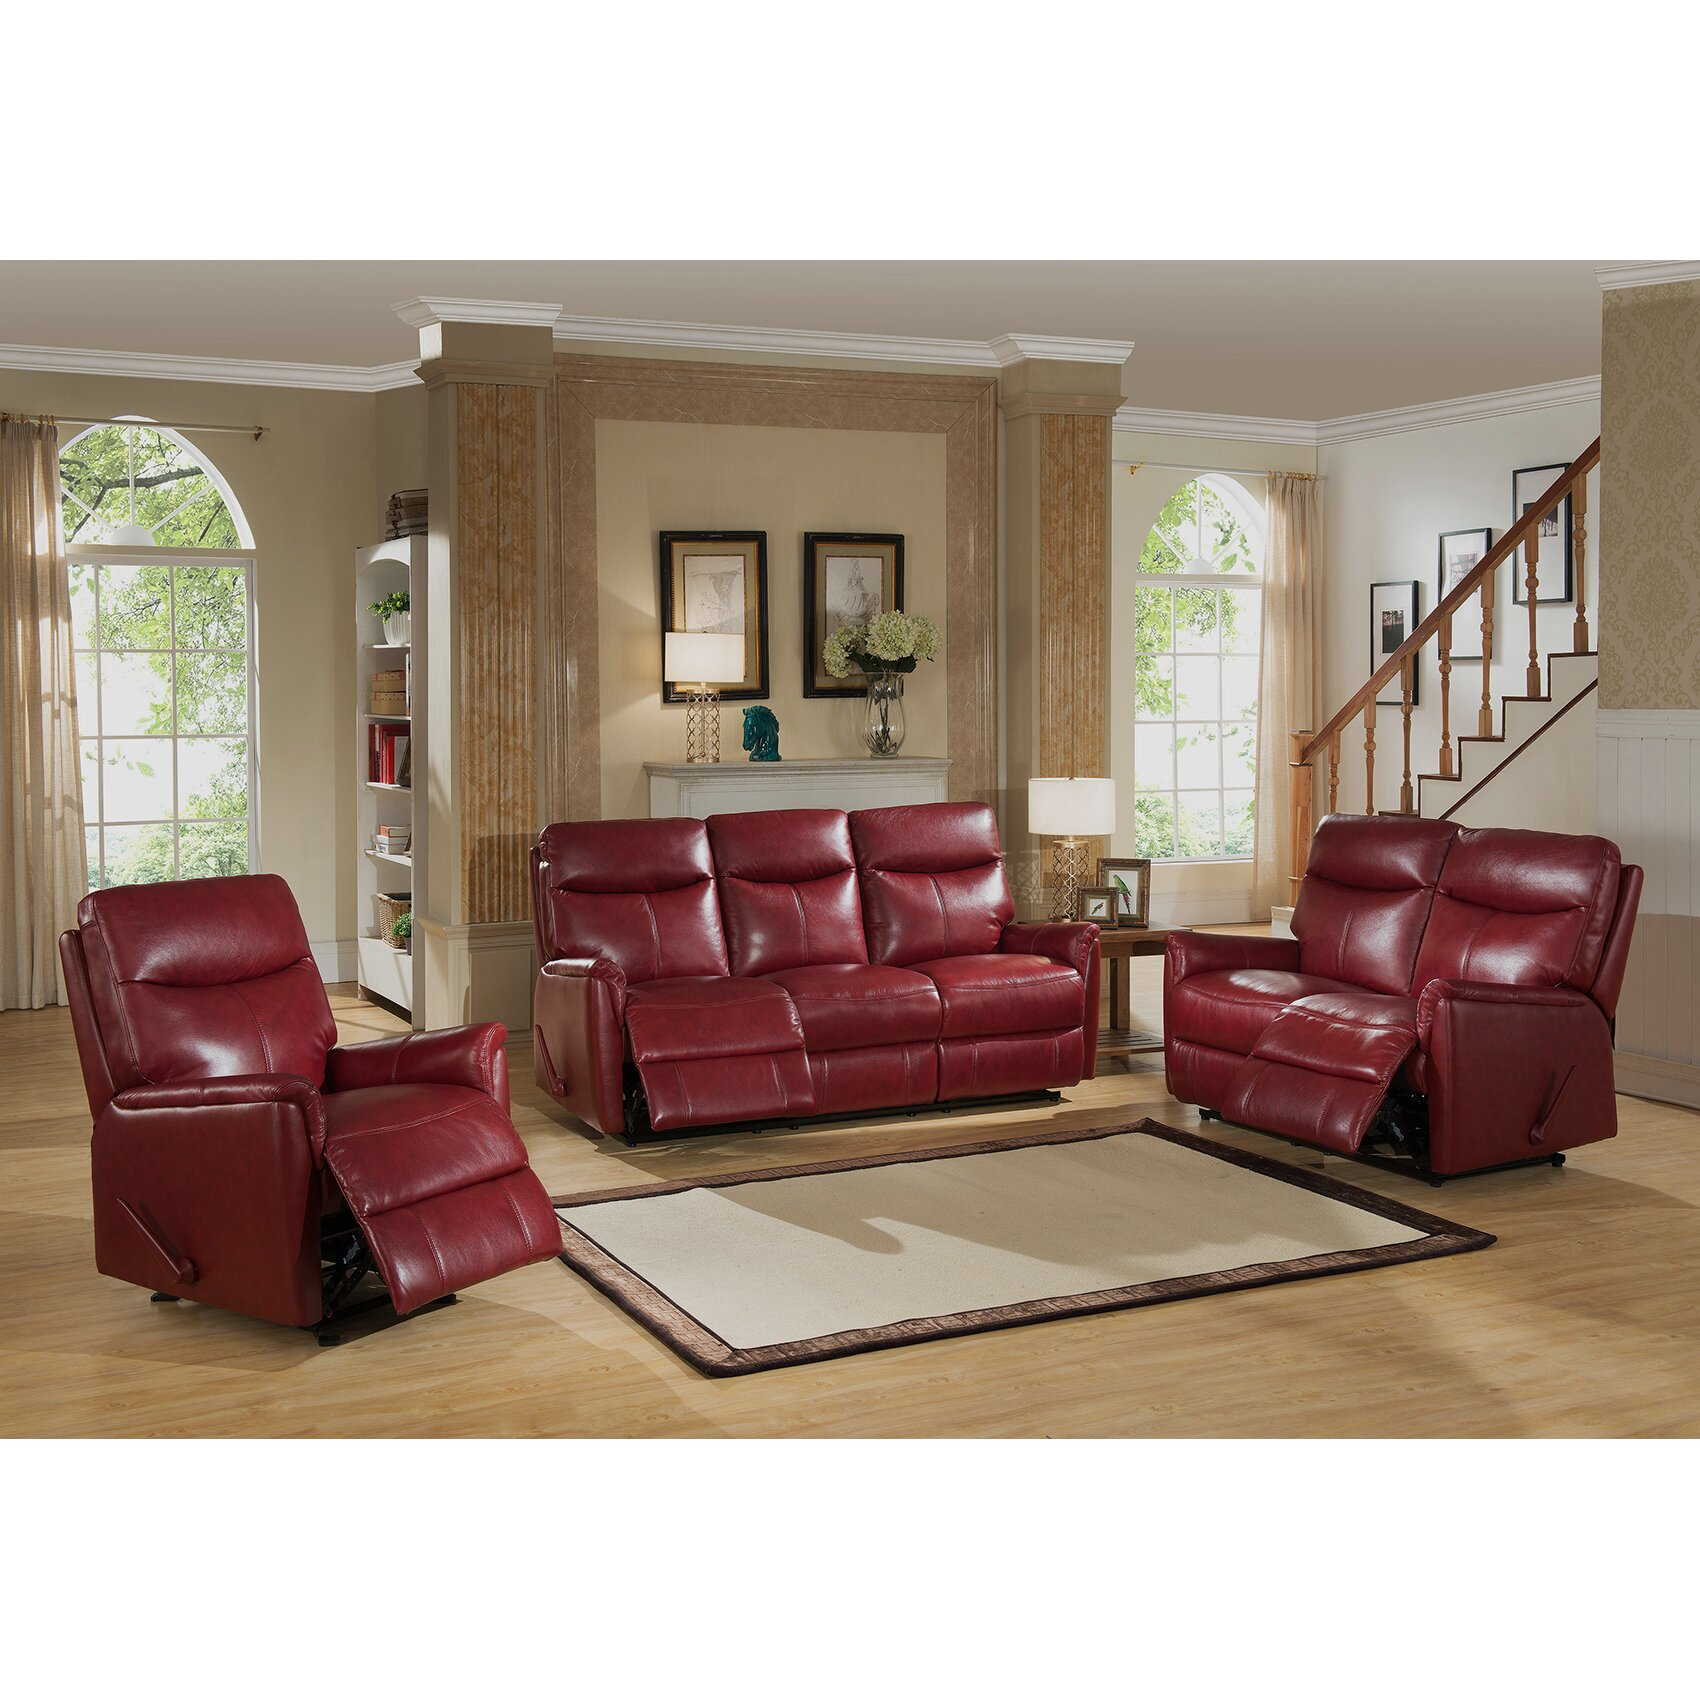 Amax napa 3 piece leather lay flat reclining living room for Living room 3 piece sets